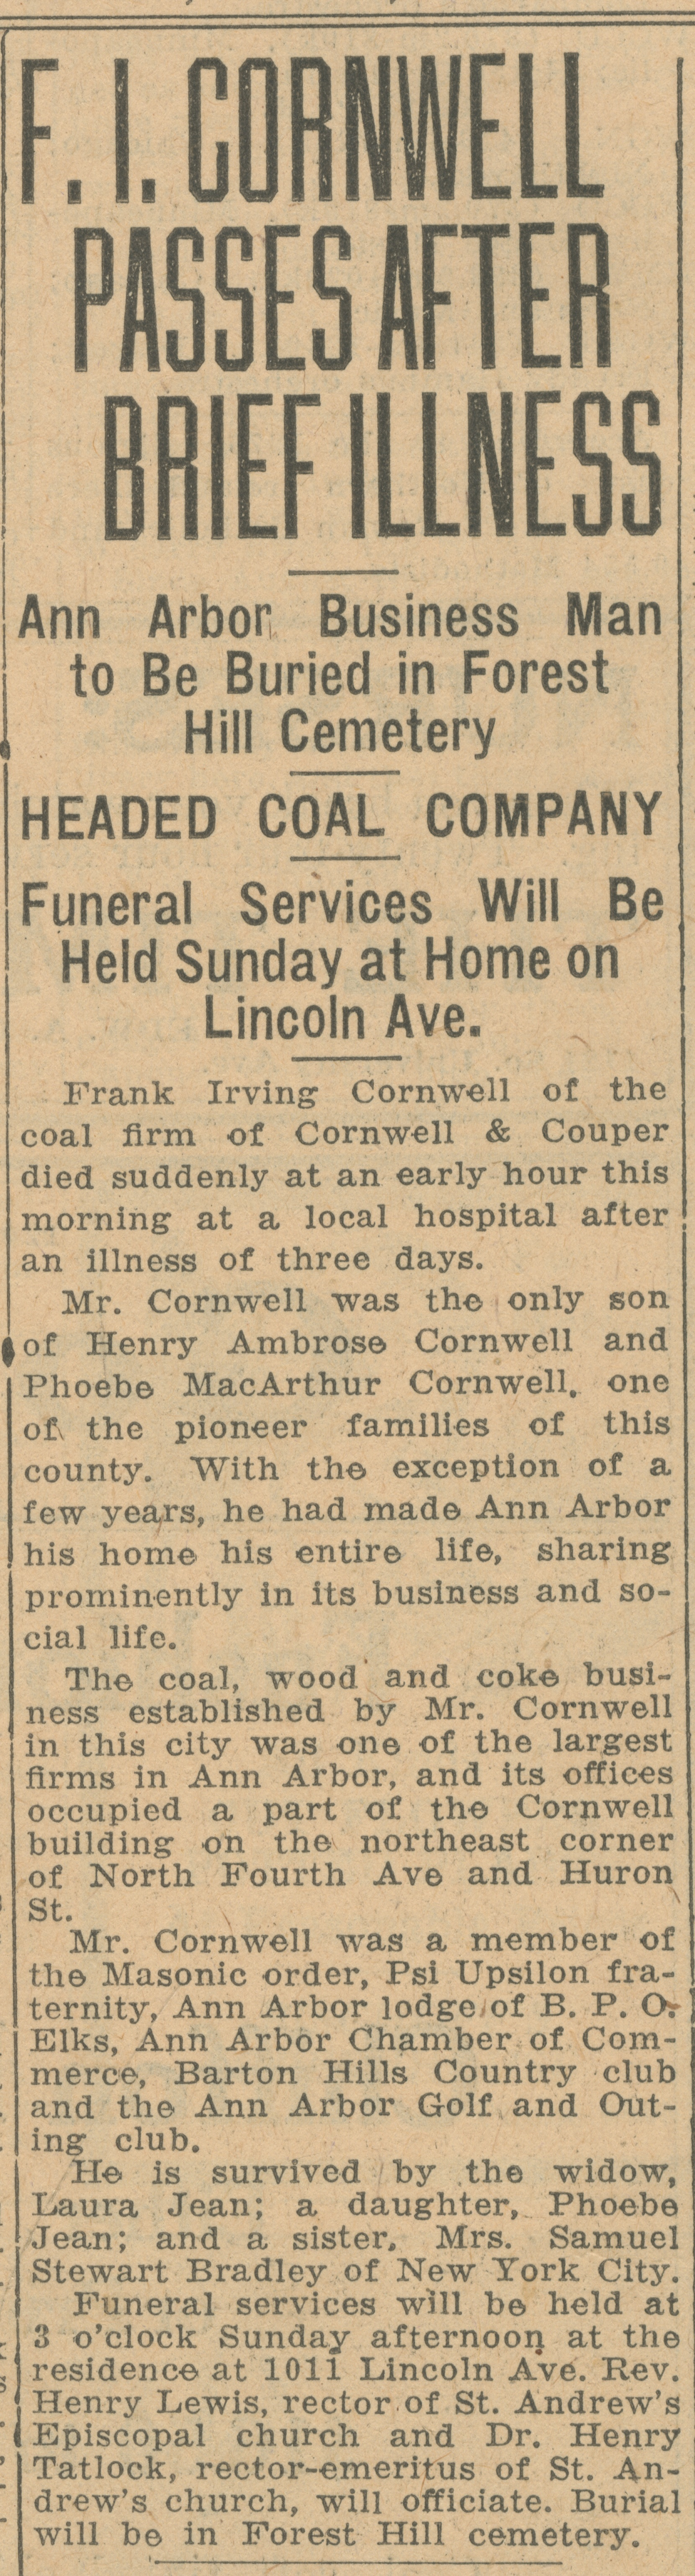 F. I. Cornwell Passes After Brief Illness image